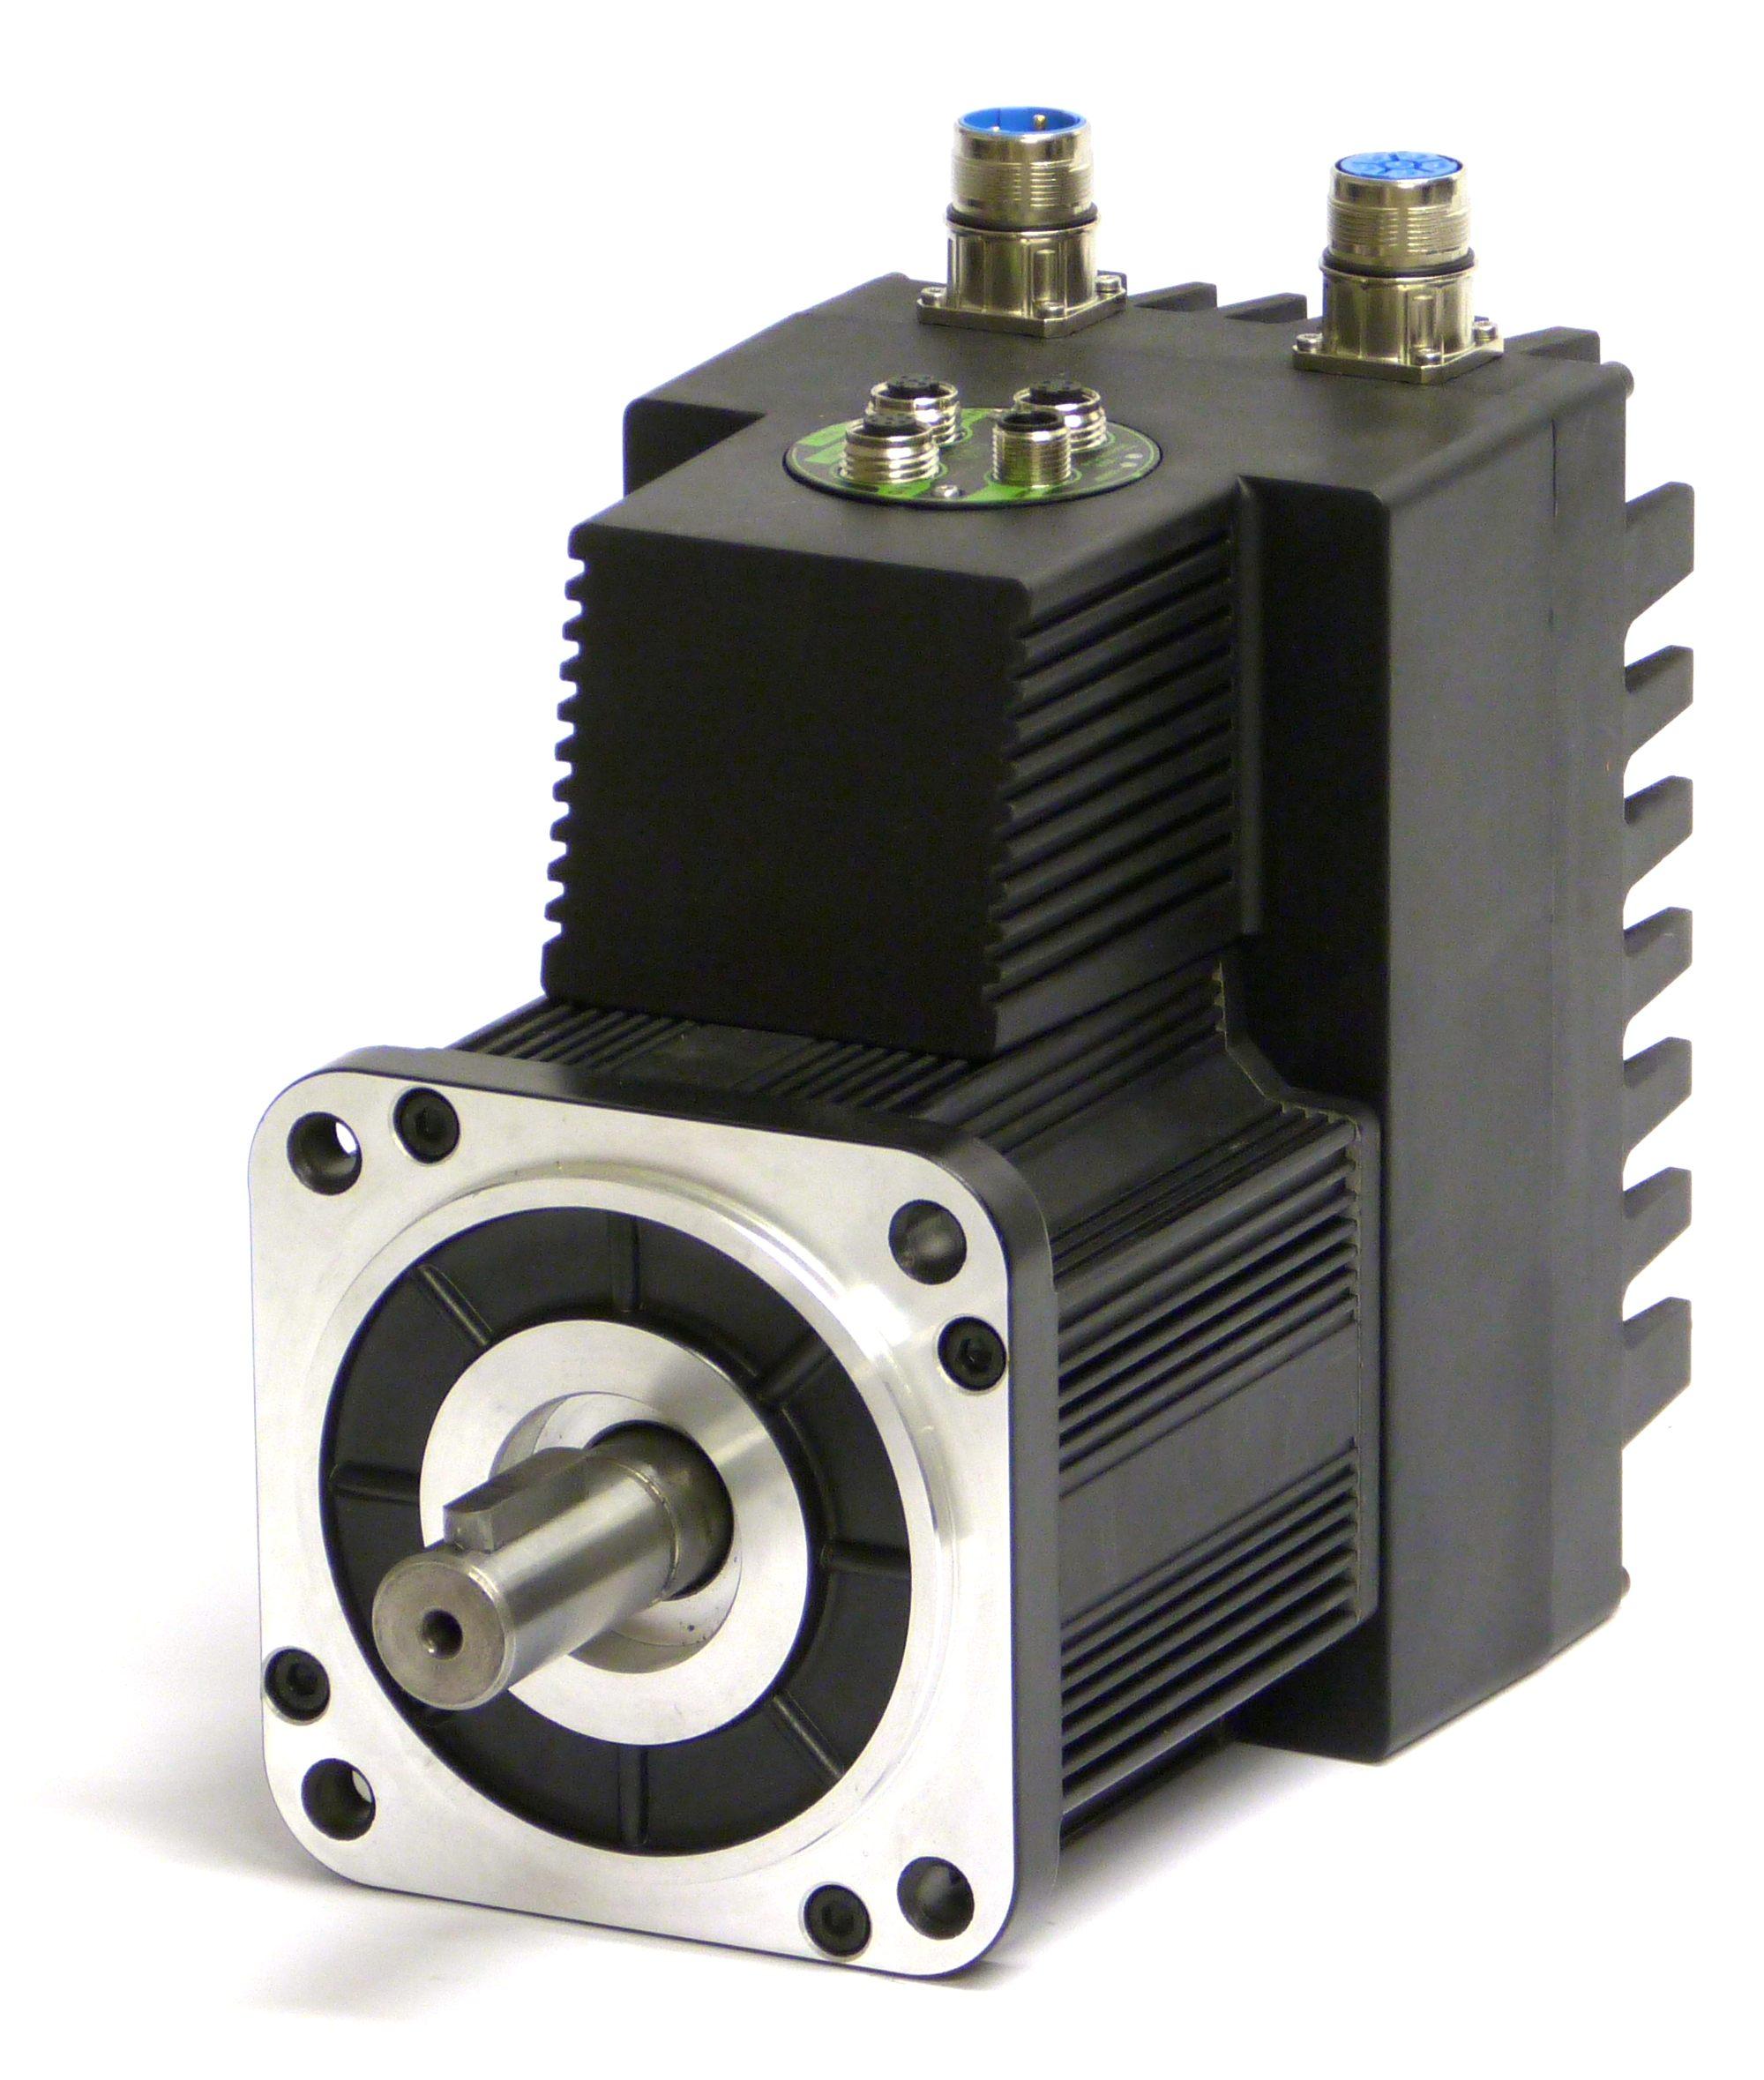 integrated servomotors mac motor series from jvl denmark